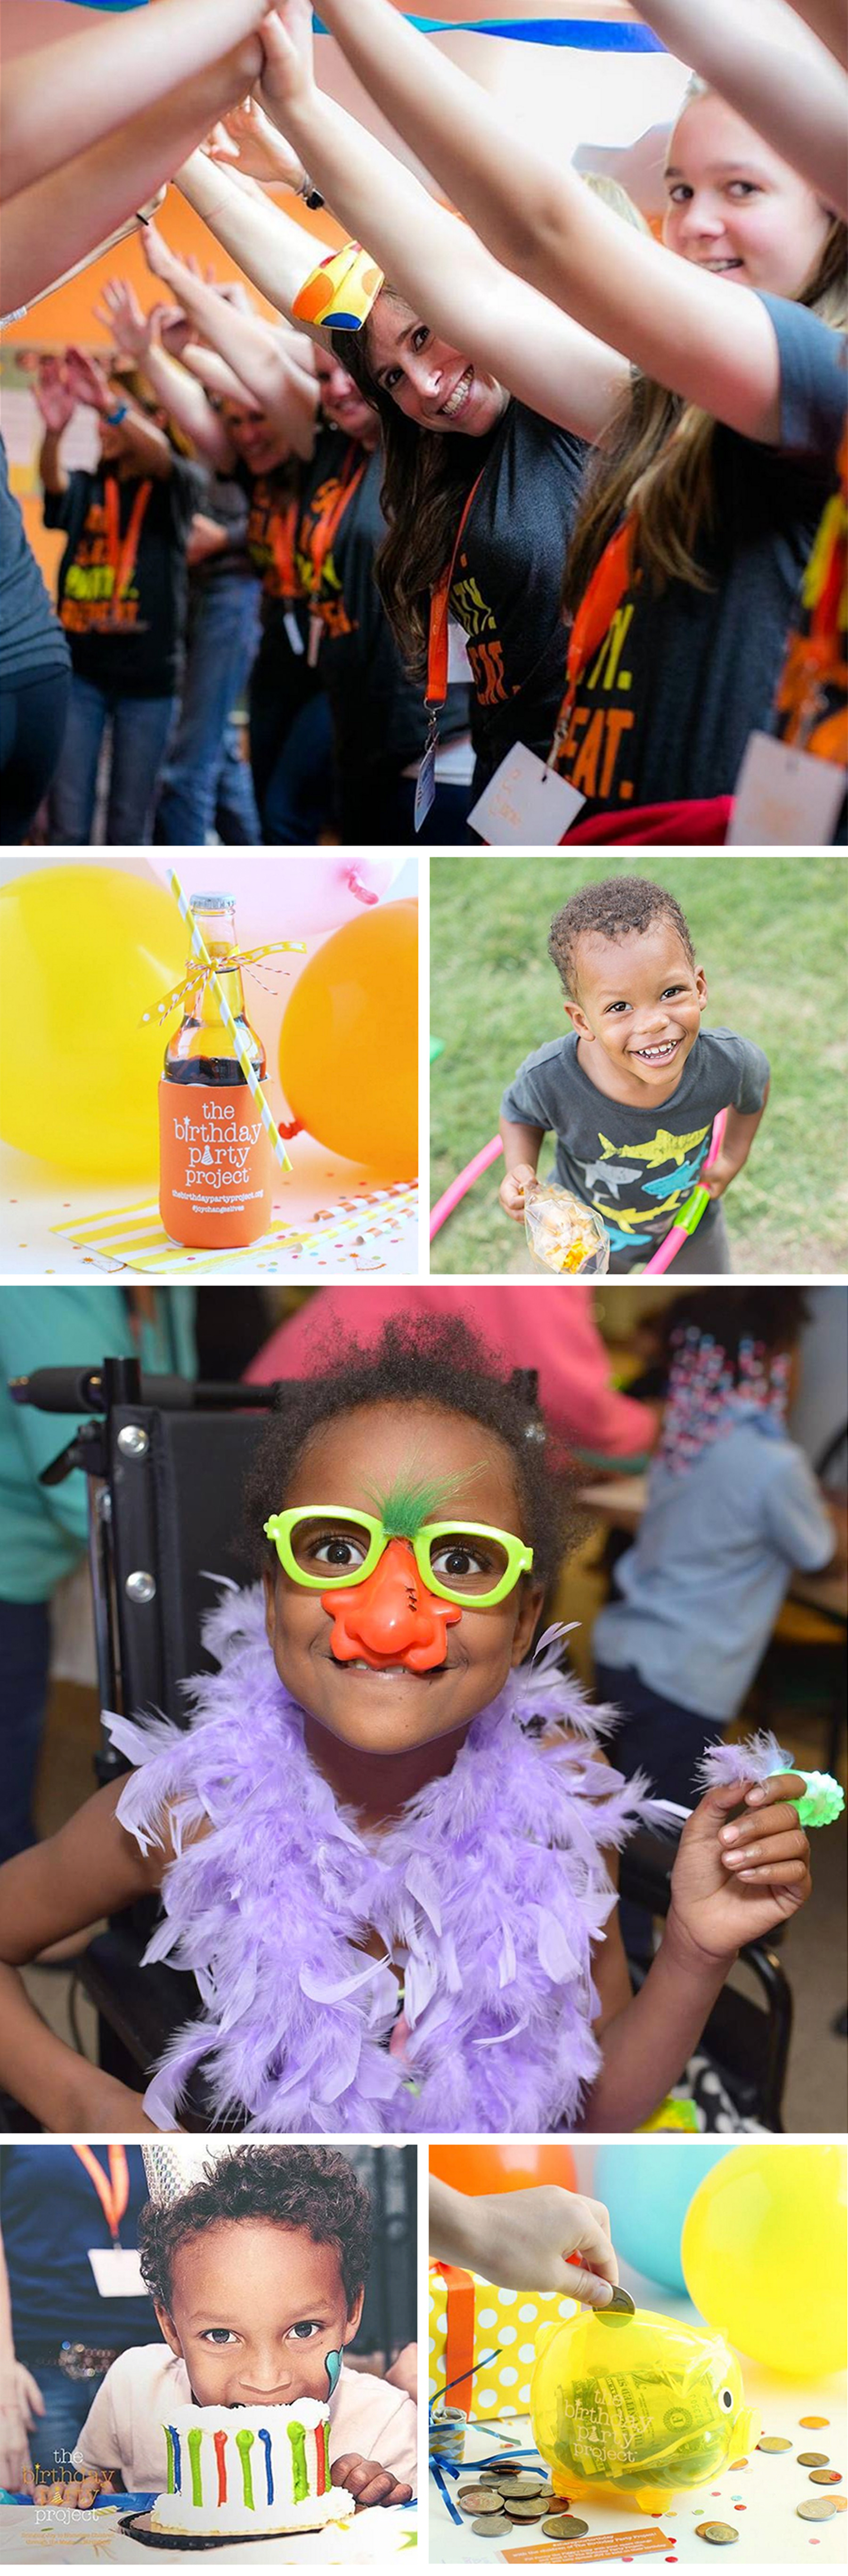 Our Muse - What The Birthday Party Project Is - Be inspired to give back to homeless children around the country with The Birthday Party Project - the birthday party project, charity, non-profit, giving back, kid's birthday party, philanthropy